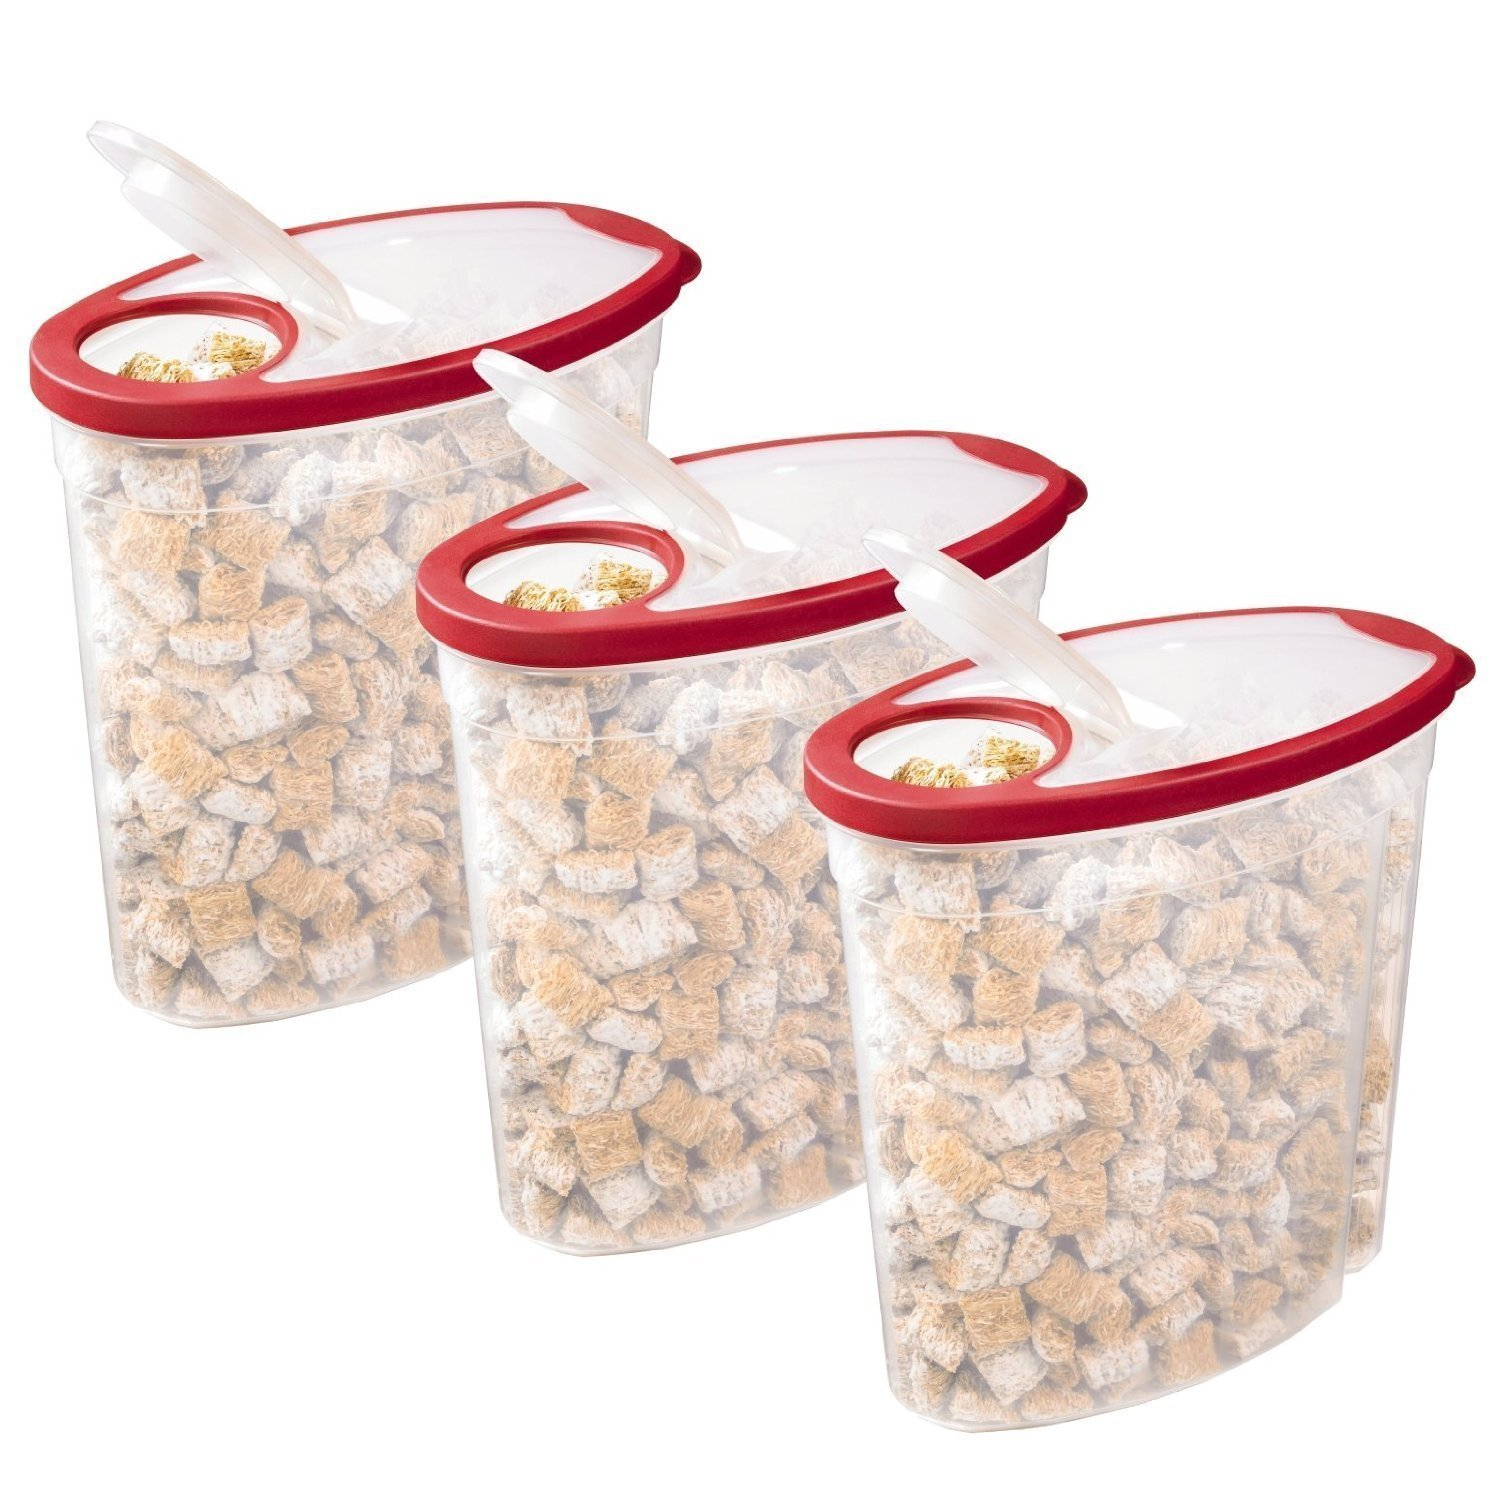 Rubbermaid cereal snack storage container each 1 5 gallon for Cereal organizer